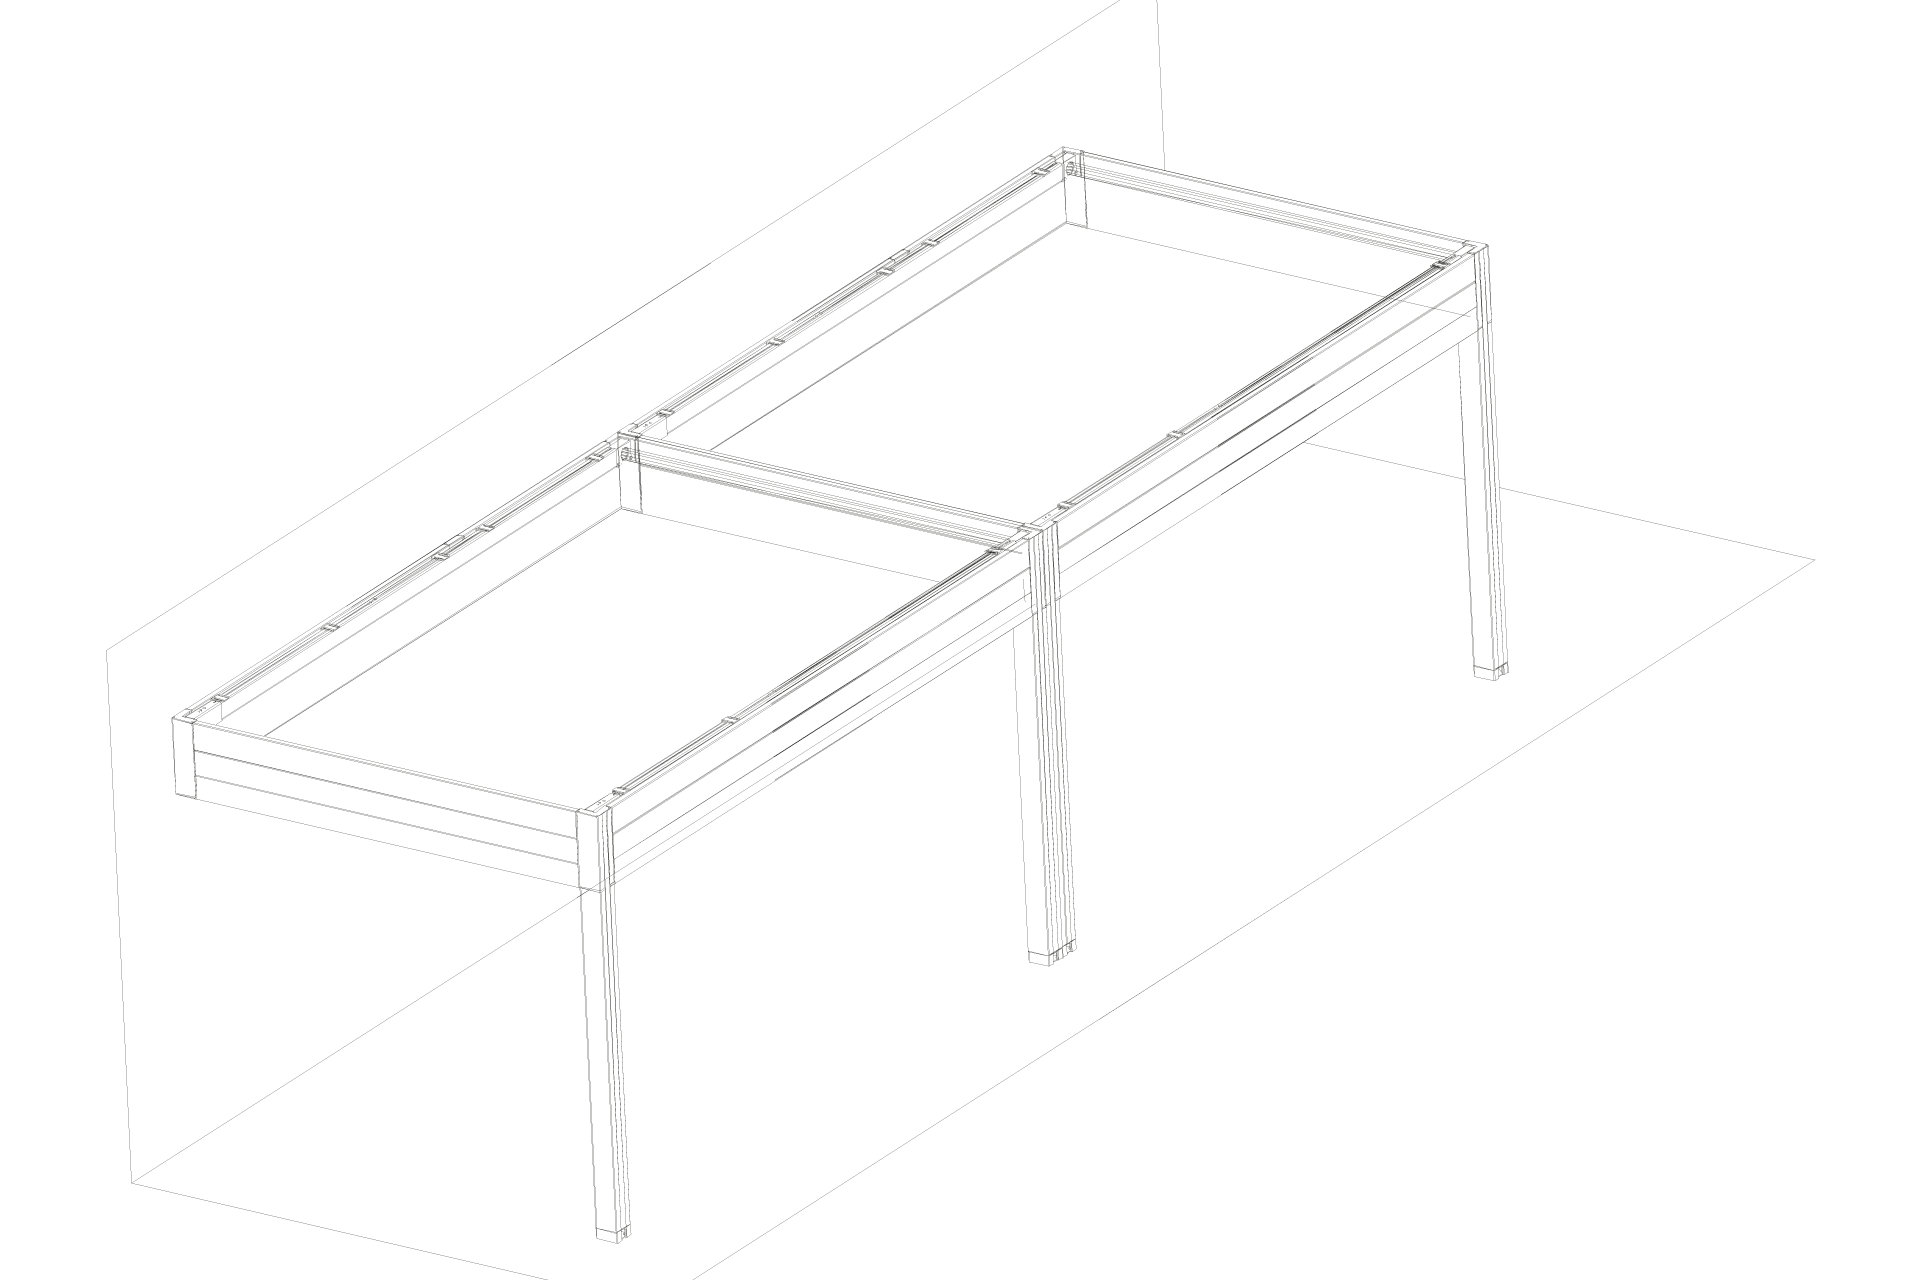 Coupling placed single form with protruding side